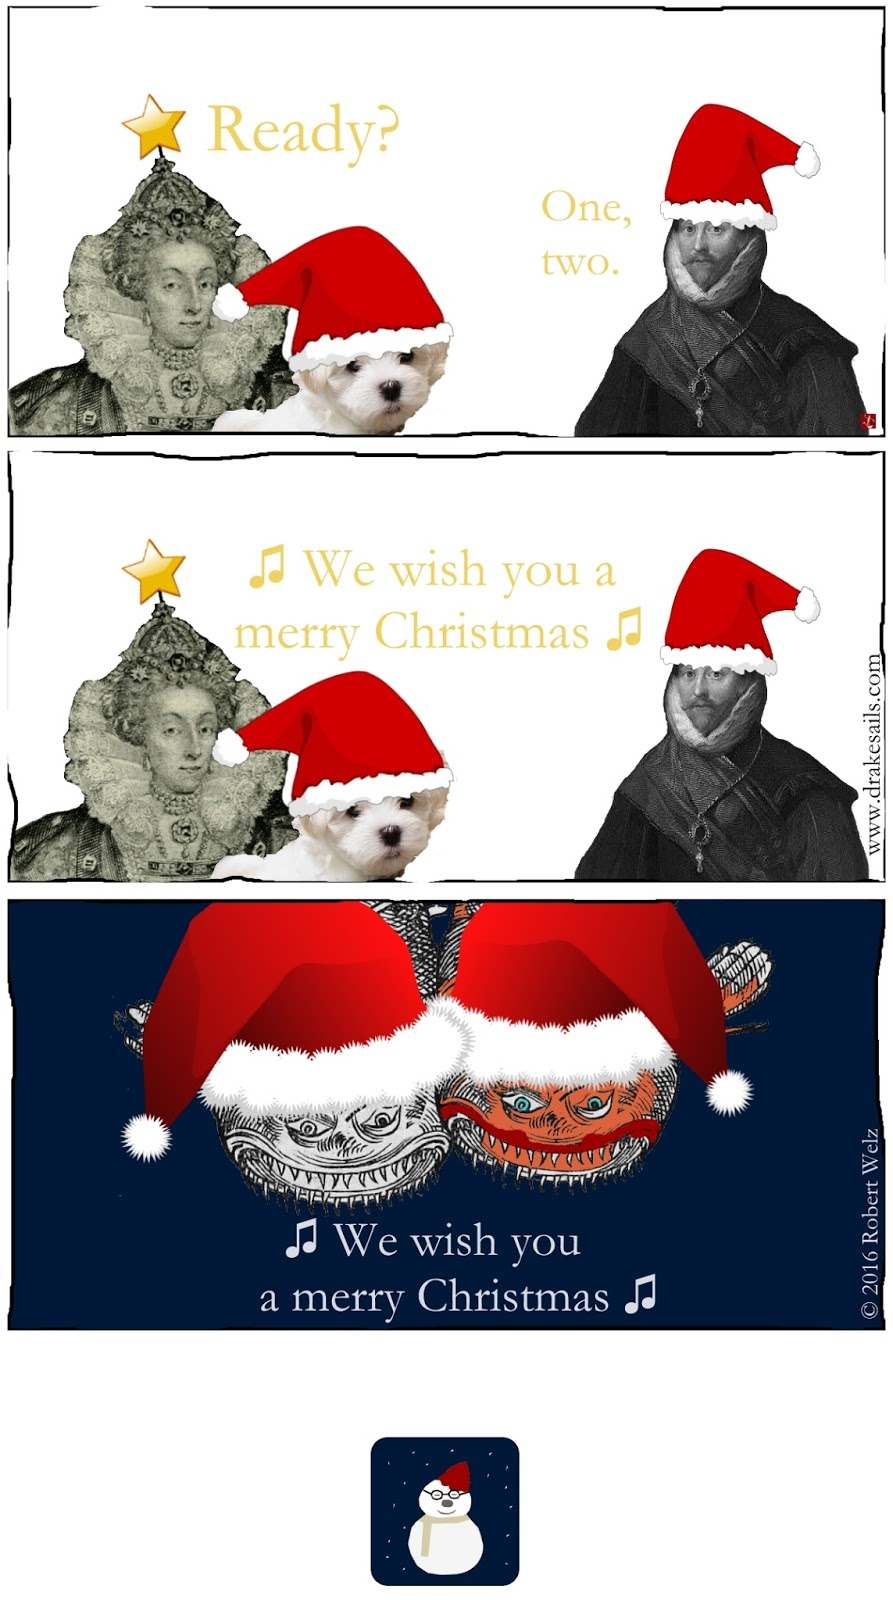 Satire Humour Web Comic:Queen Elizabeth I, pirate Francis Drake and two funny sea monsters singing for you: Merry Christmas